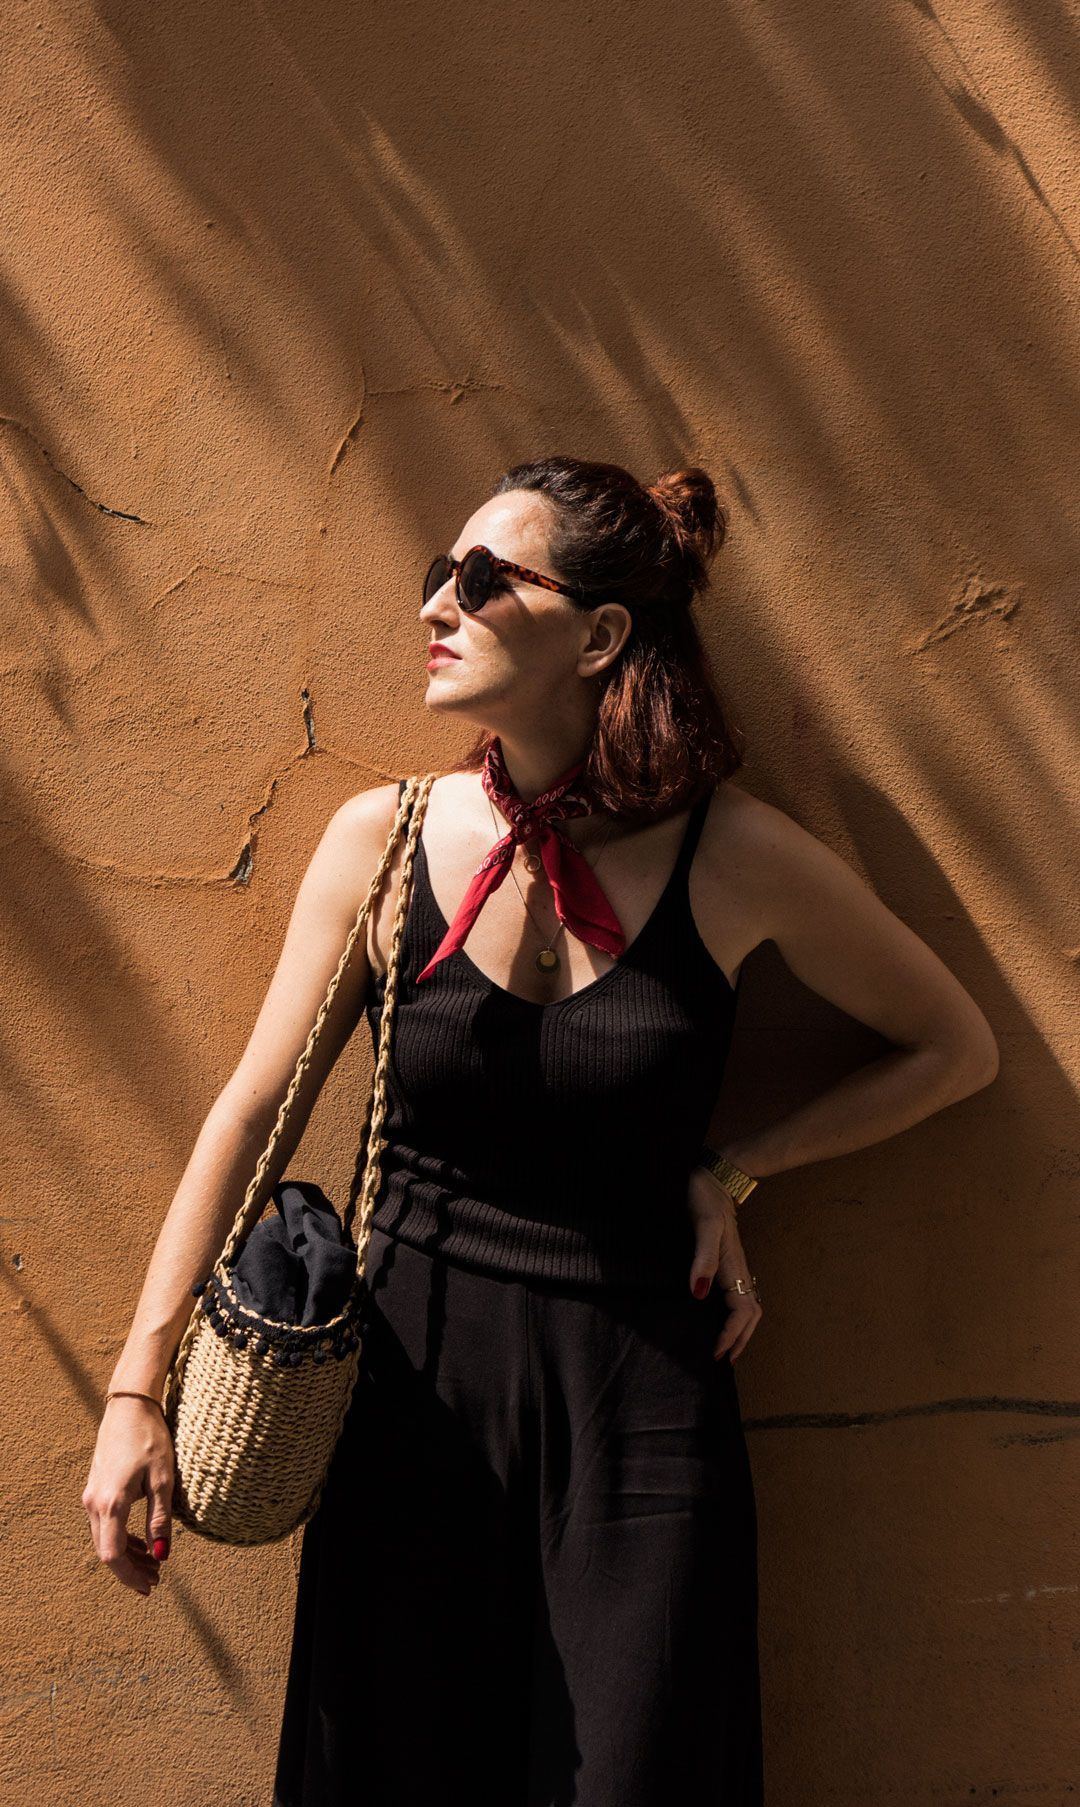 My Italian trip and how to dress for a hot summer in Tuscany   Effortless chic Italian style   Back culottes   How to style culottes   All black look   Red bandana   Stripes   Romantic look   Chic look   Summer outfit inspiration   Straw bag   Raffia bag   She talks Glam   Saida Antolin   Spanish Blogger   Italian Fashion